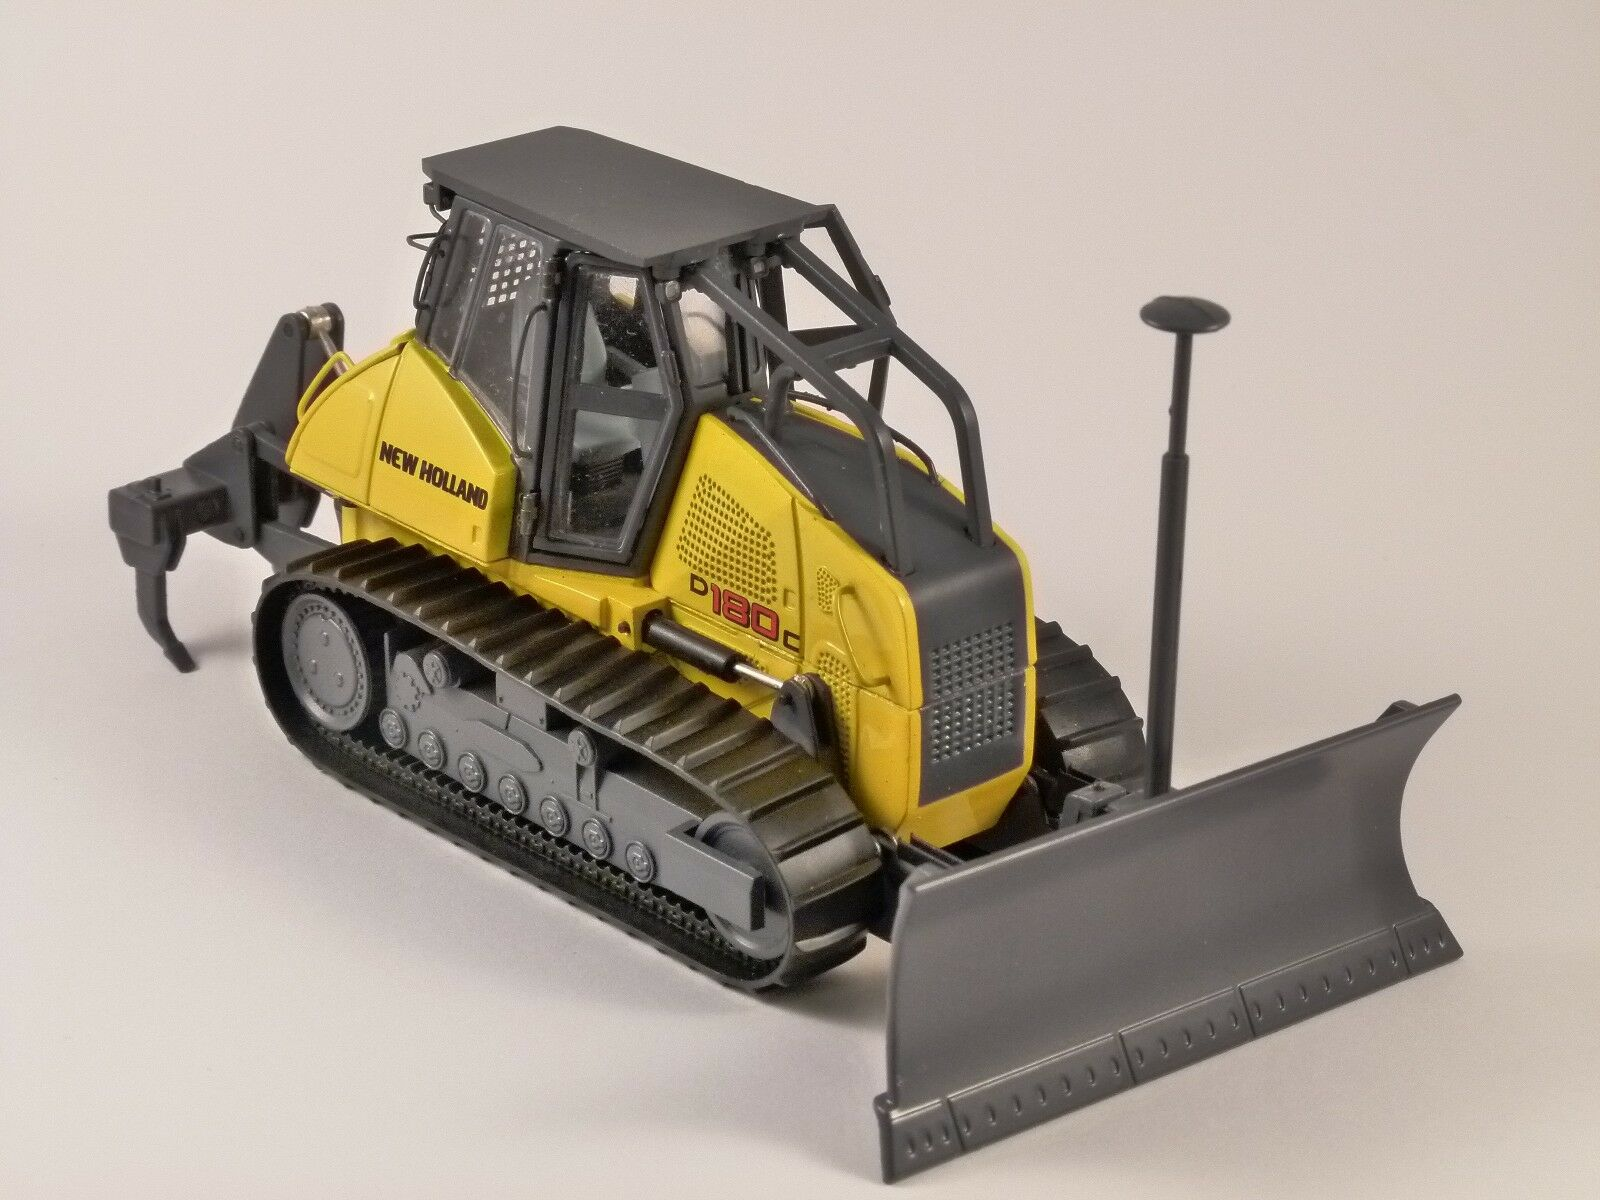 New Holland D180C 1 50 scale model by Motorart 13786